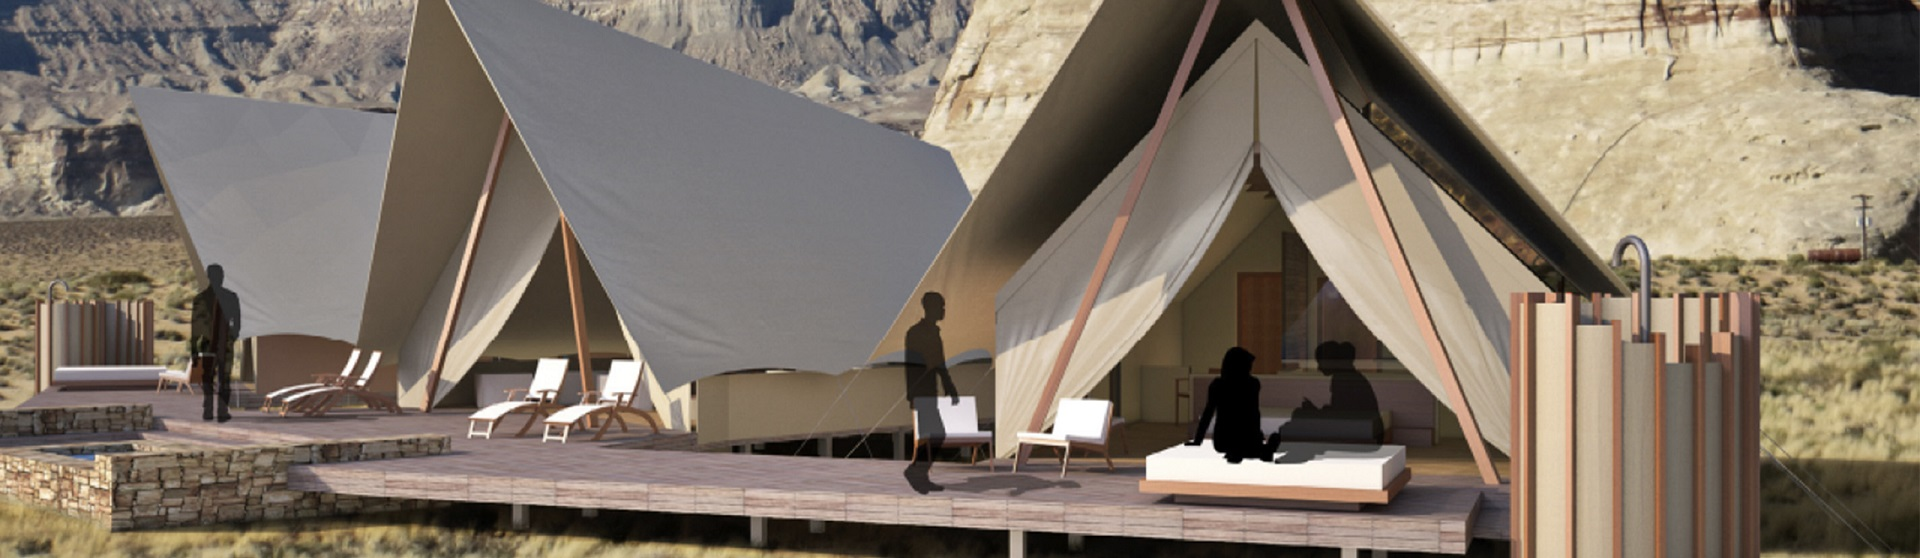 Free to Attend Webinar on Pop Up Hotel Concepts - The New Trend in Hospitality